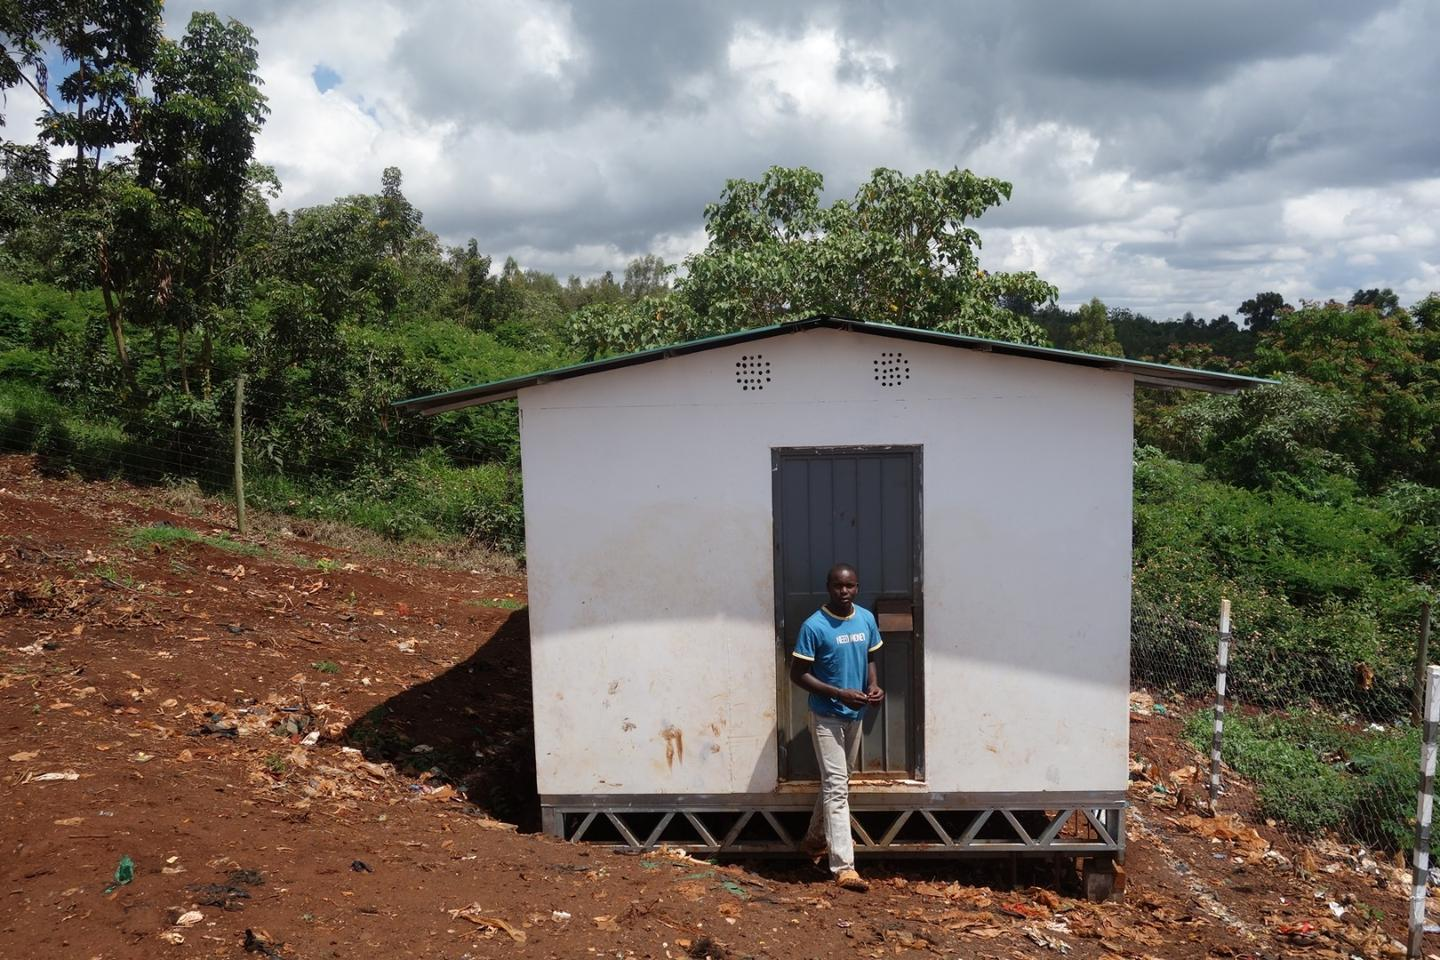 Aleutia's Solar Classroom in a Box comes flat-packed and can be assembled in two days by local laborers